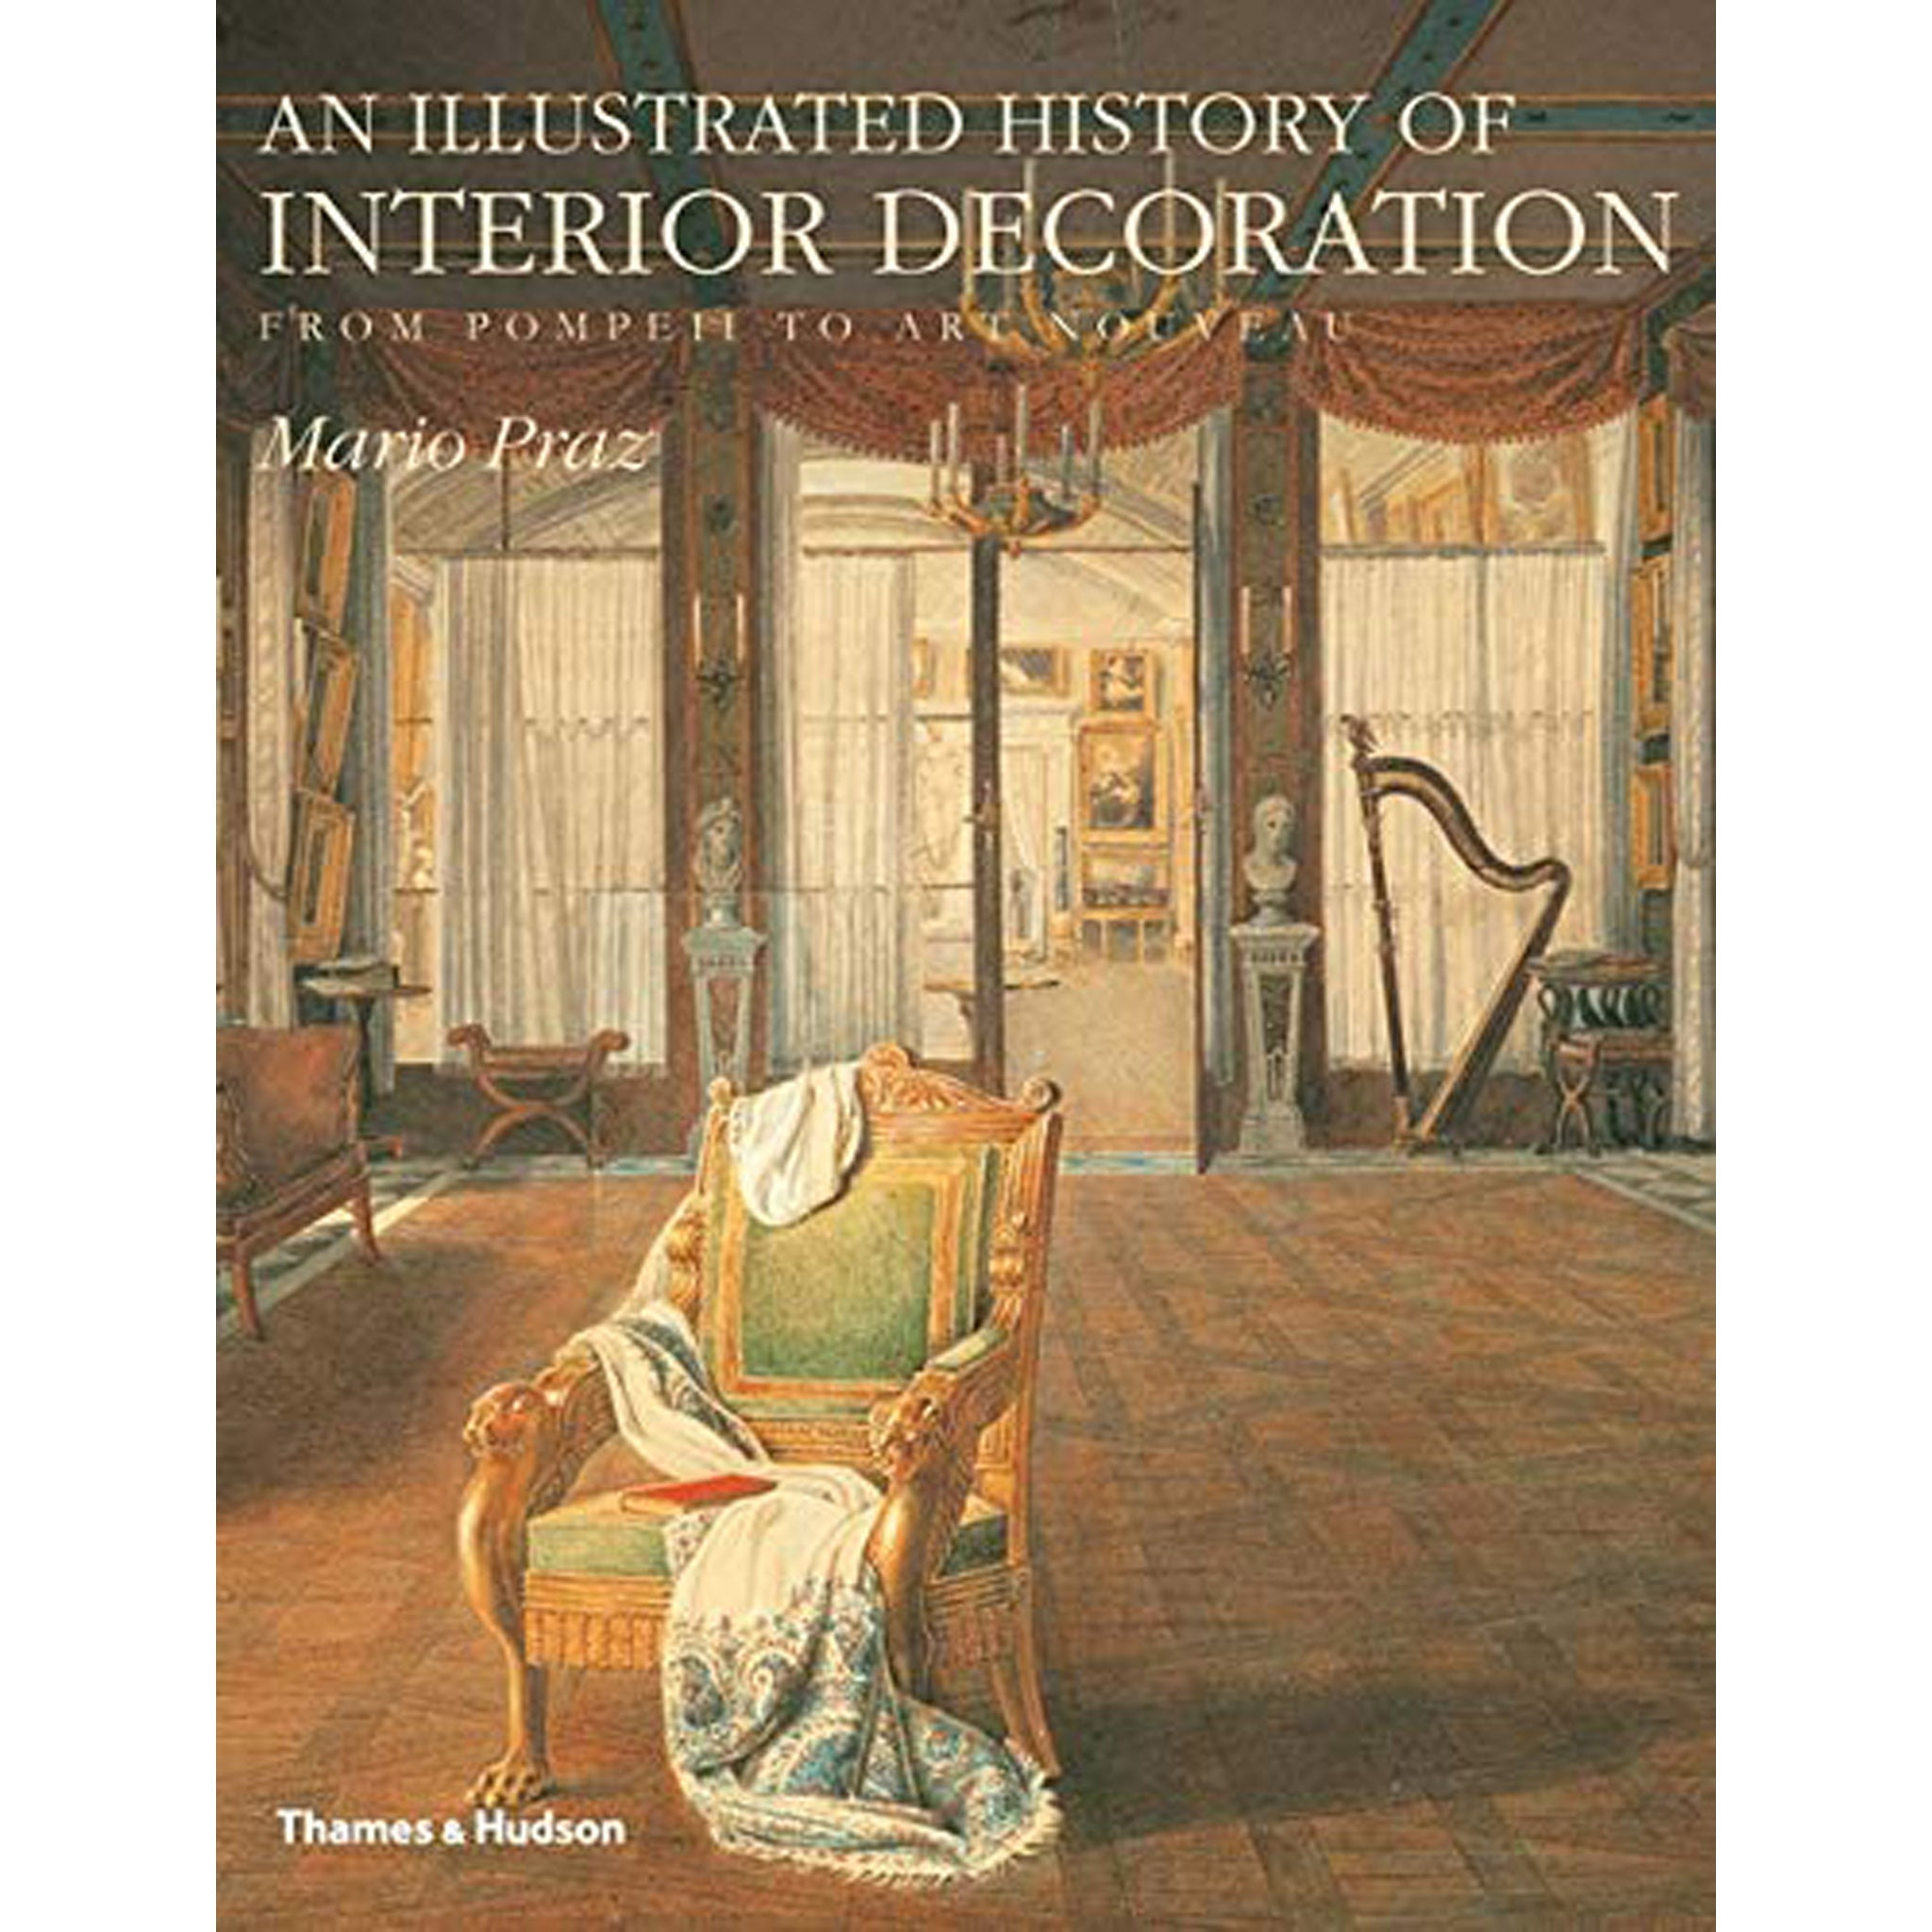 An Illustrated History of Interior Decoration